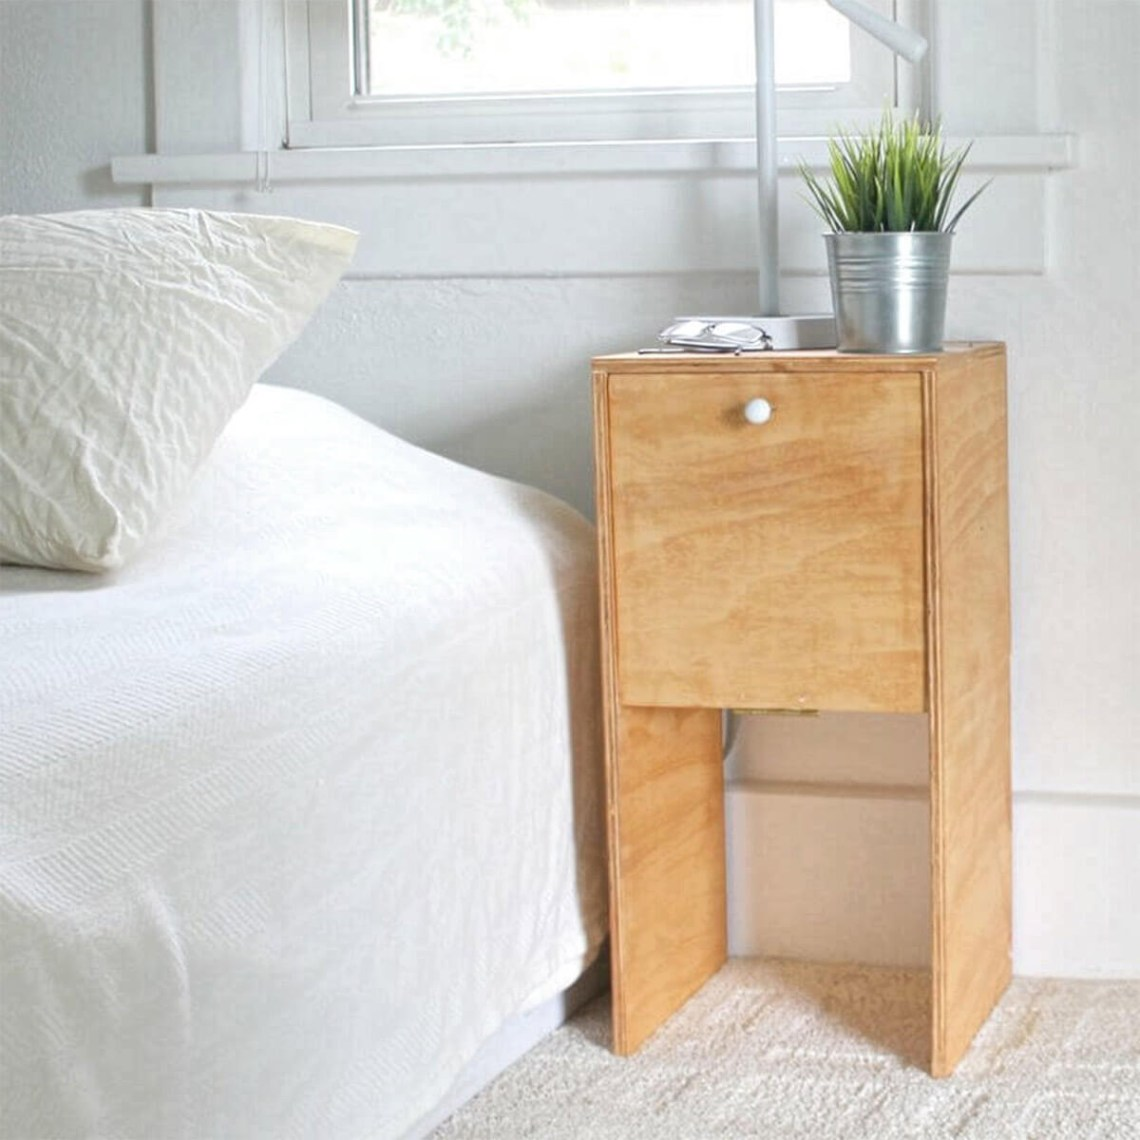 A creative wardrobe design comfortable and suitable plywood furniture for large and small bedrooms